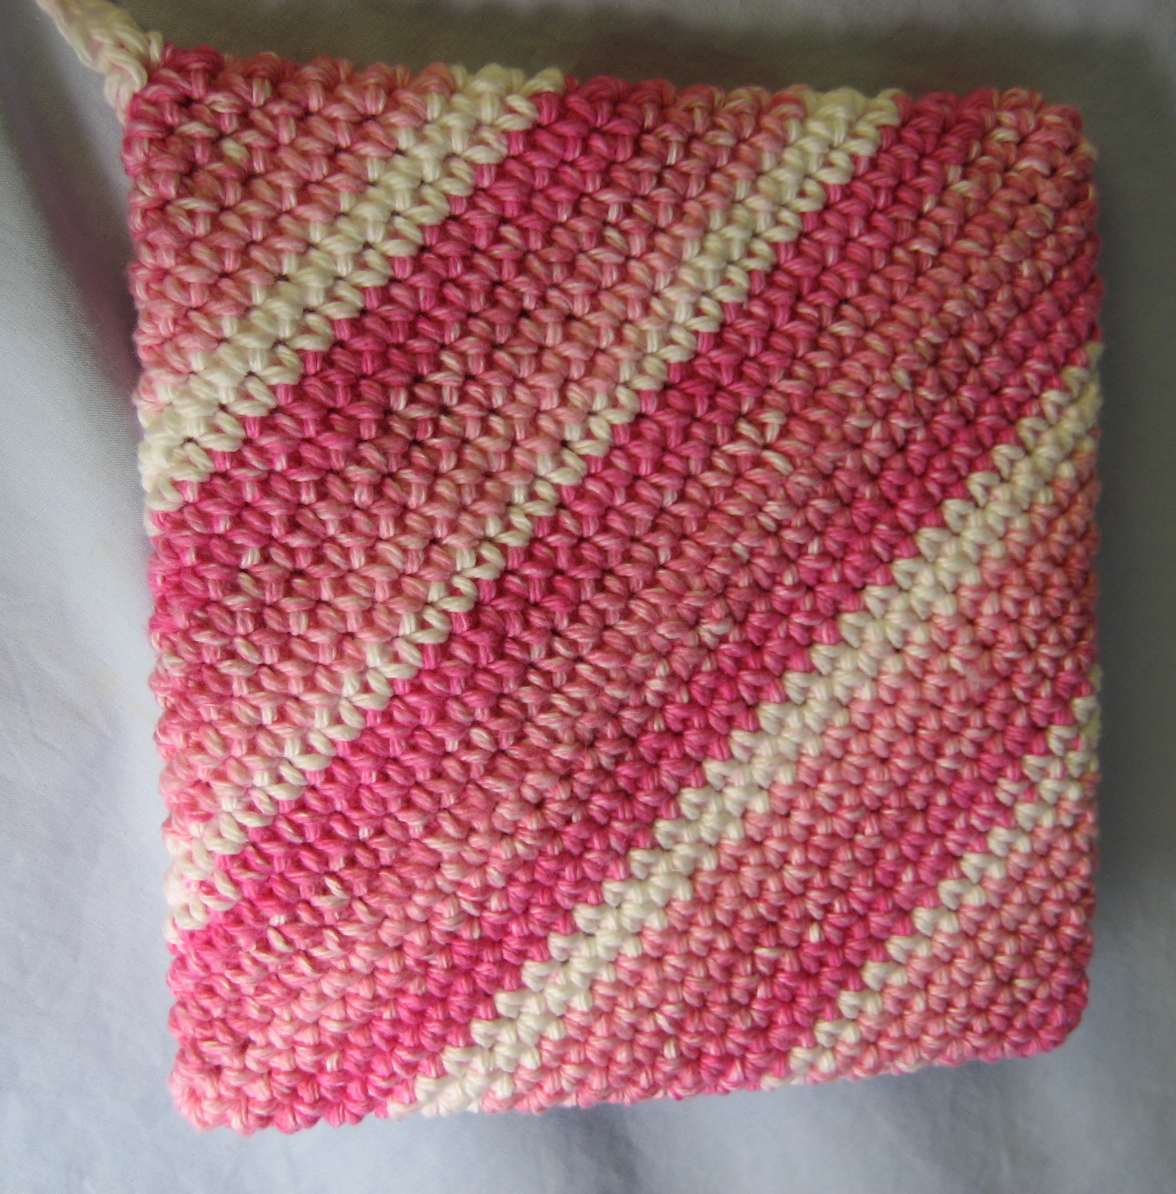 Knitted Potholder Pattern Double : Hooked on Needles: Crocheted Hot Pad/Potholder - Its double thick!